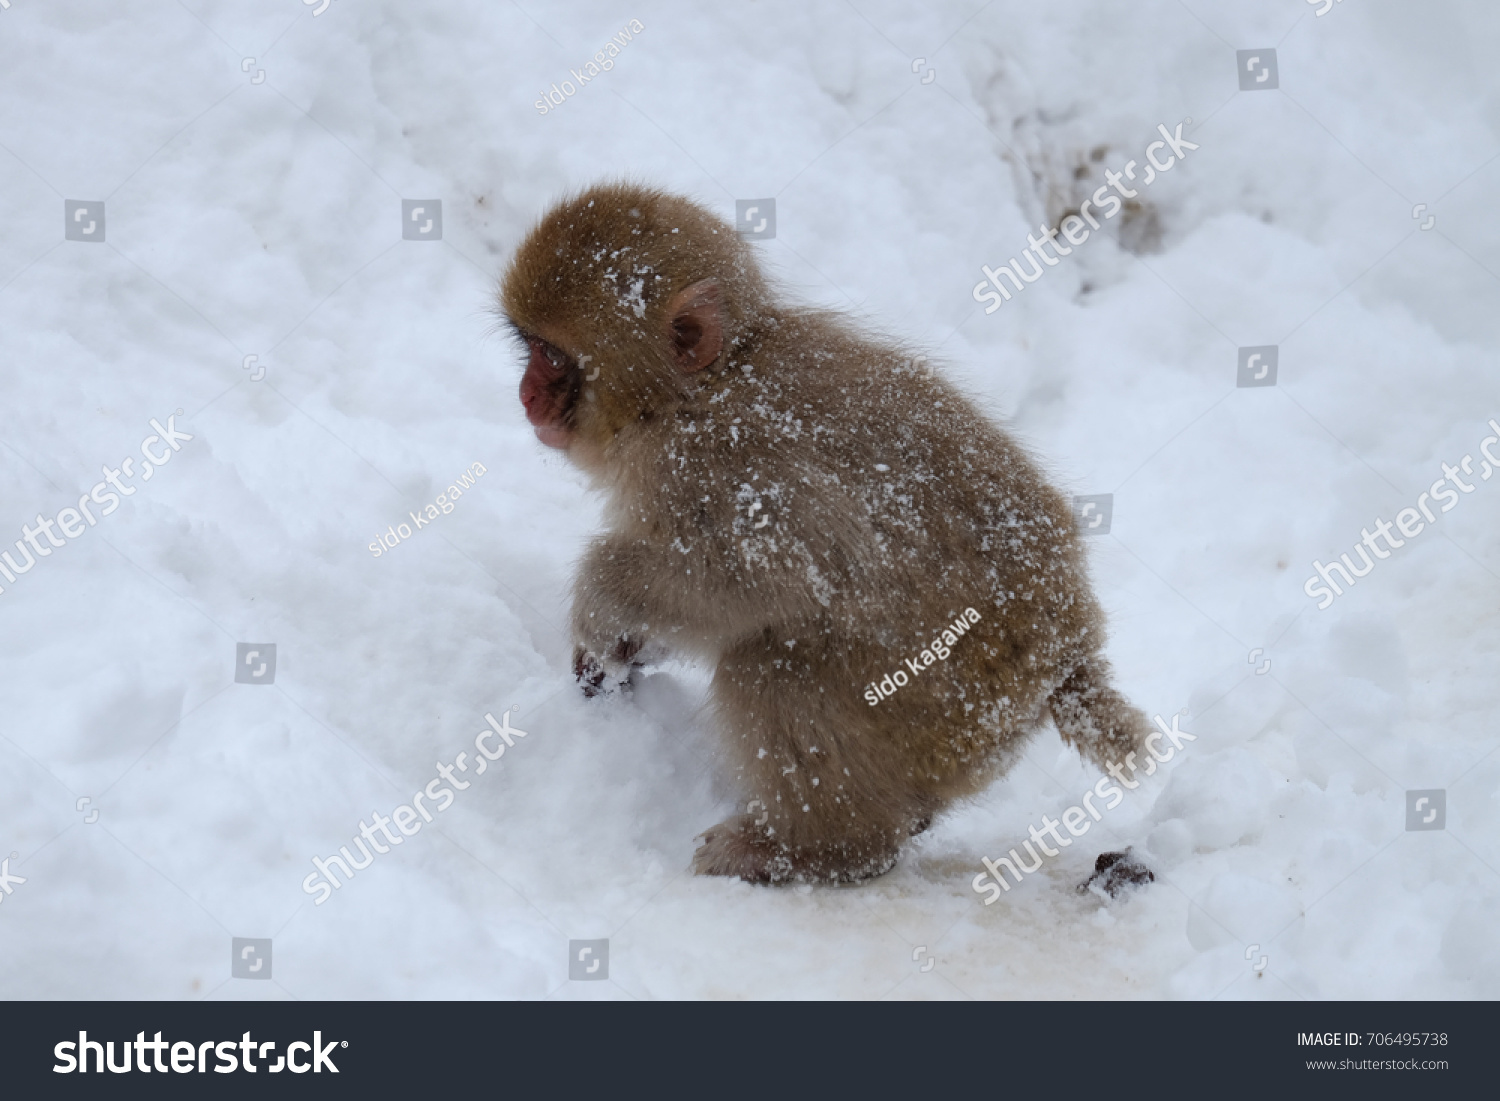 Japanese monkey Shot at JIGOKUDANI Wildlife Park in Nagano Prefecture #706495738